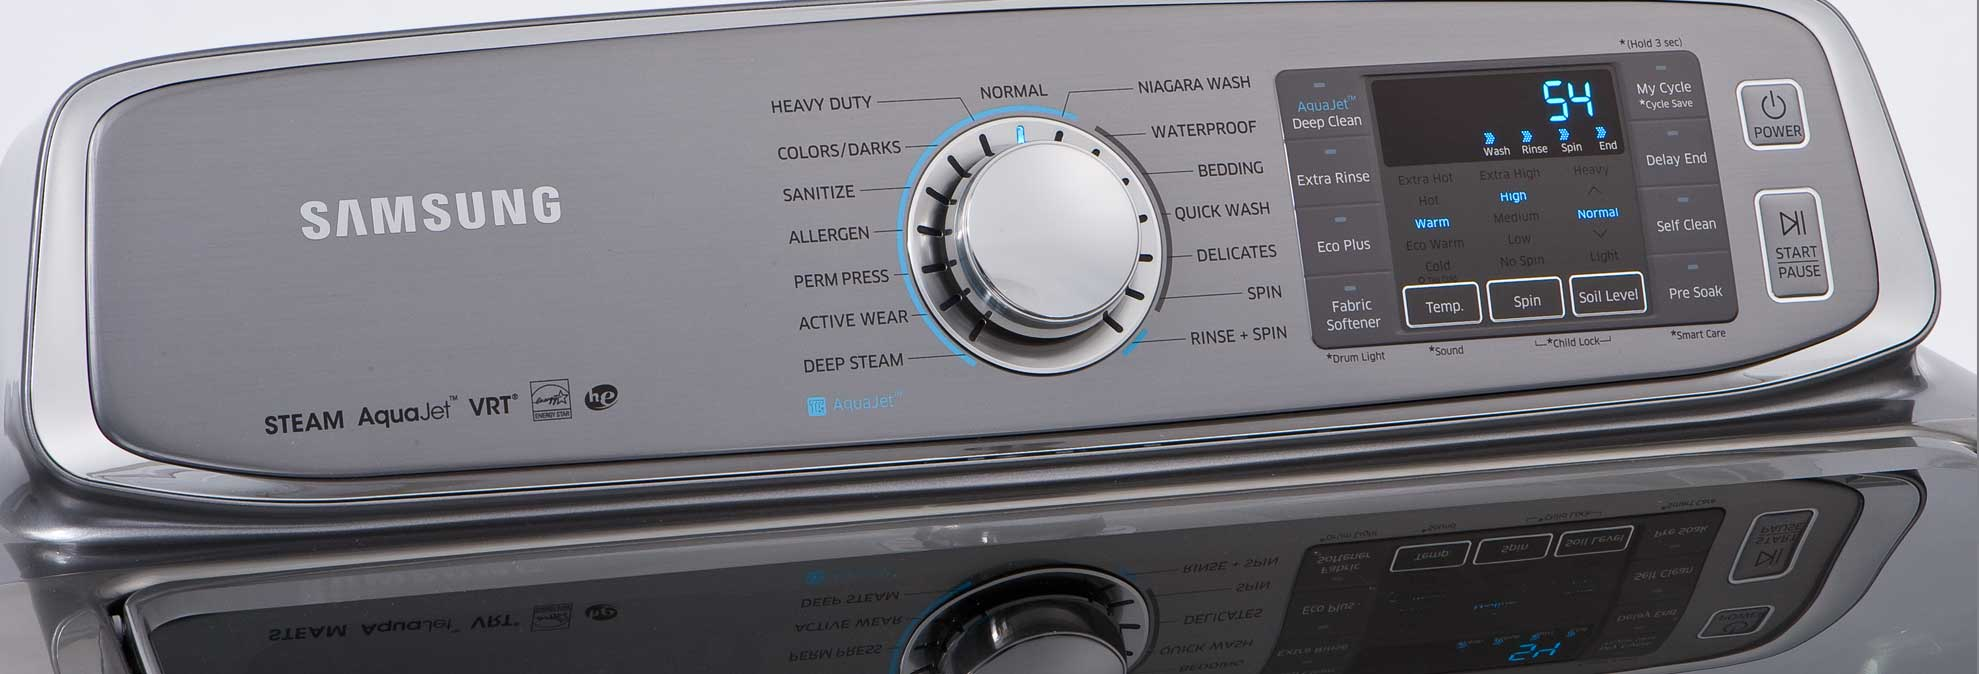 Samsung Front Load Washer Reports Of Samsung Washers Exploding Prompts Company To Issue